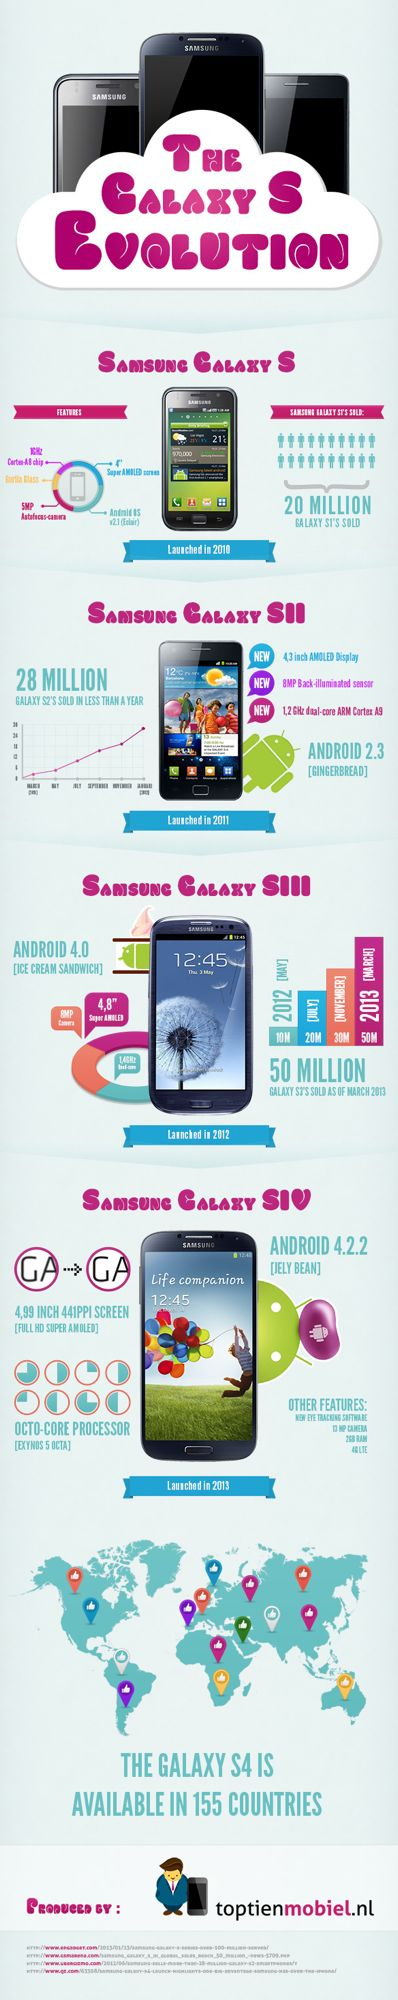 Samsung Galaxy S4 from original to launch pic main